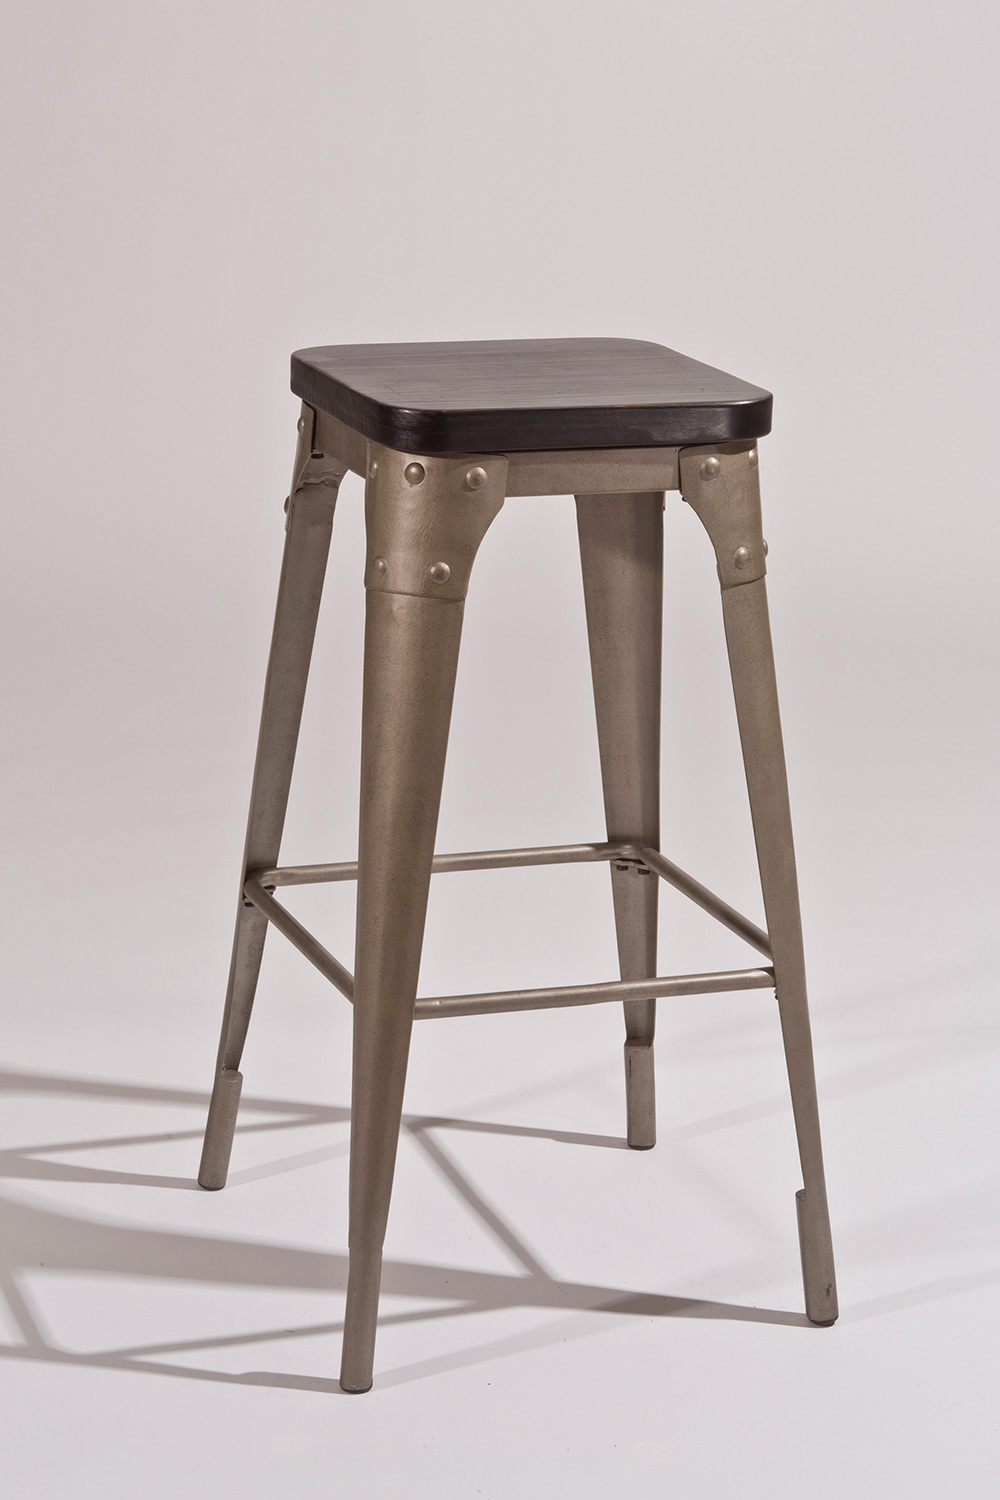 Hillsdale Morris Backless Counter Stool - Dark Gray/Black Wood